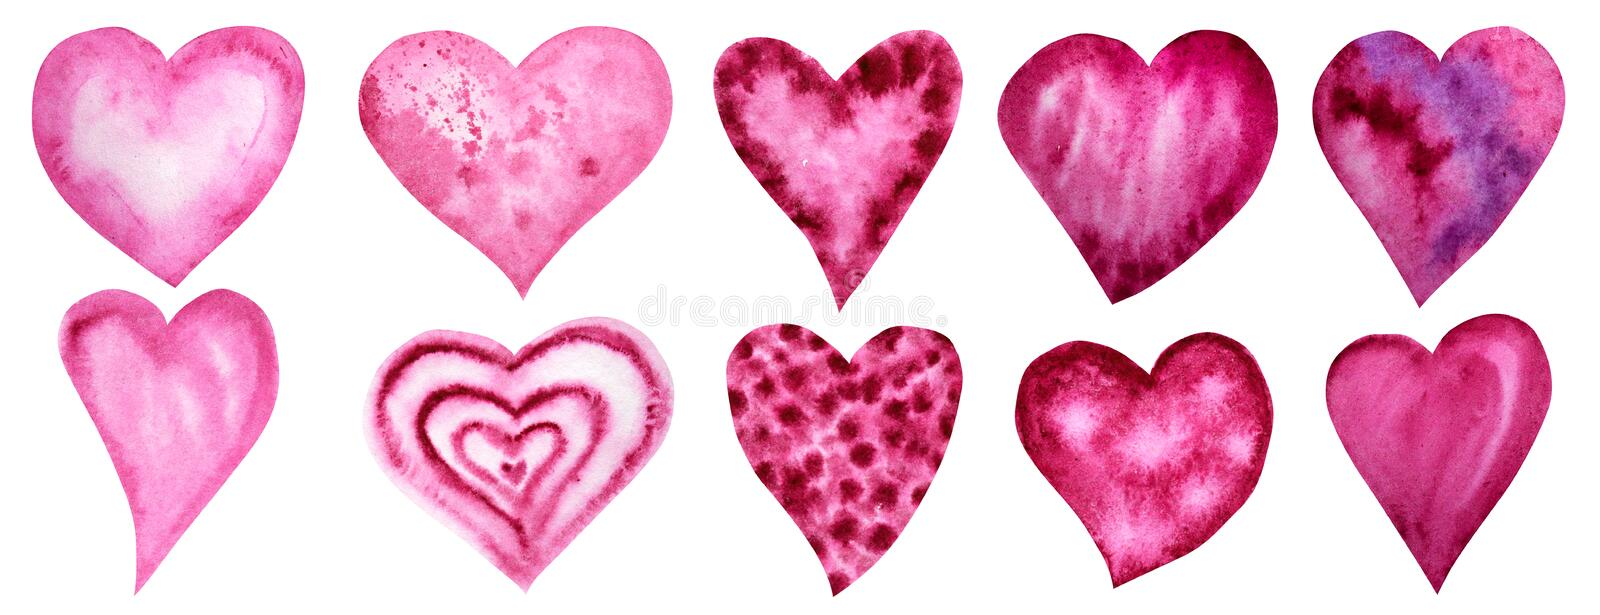 Set of watercolor hearts icon collection. Hand drawn various red pink hearts isolated on white background. Wedding or. Big Set of watercolor hearts icon royalty free stock photography